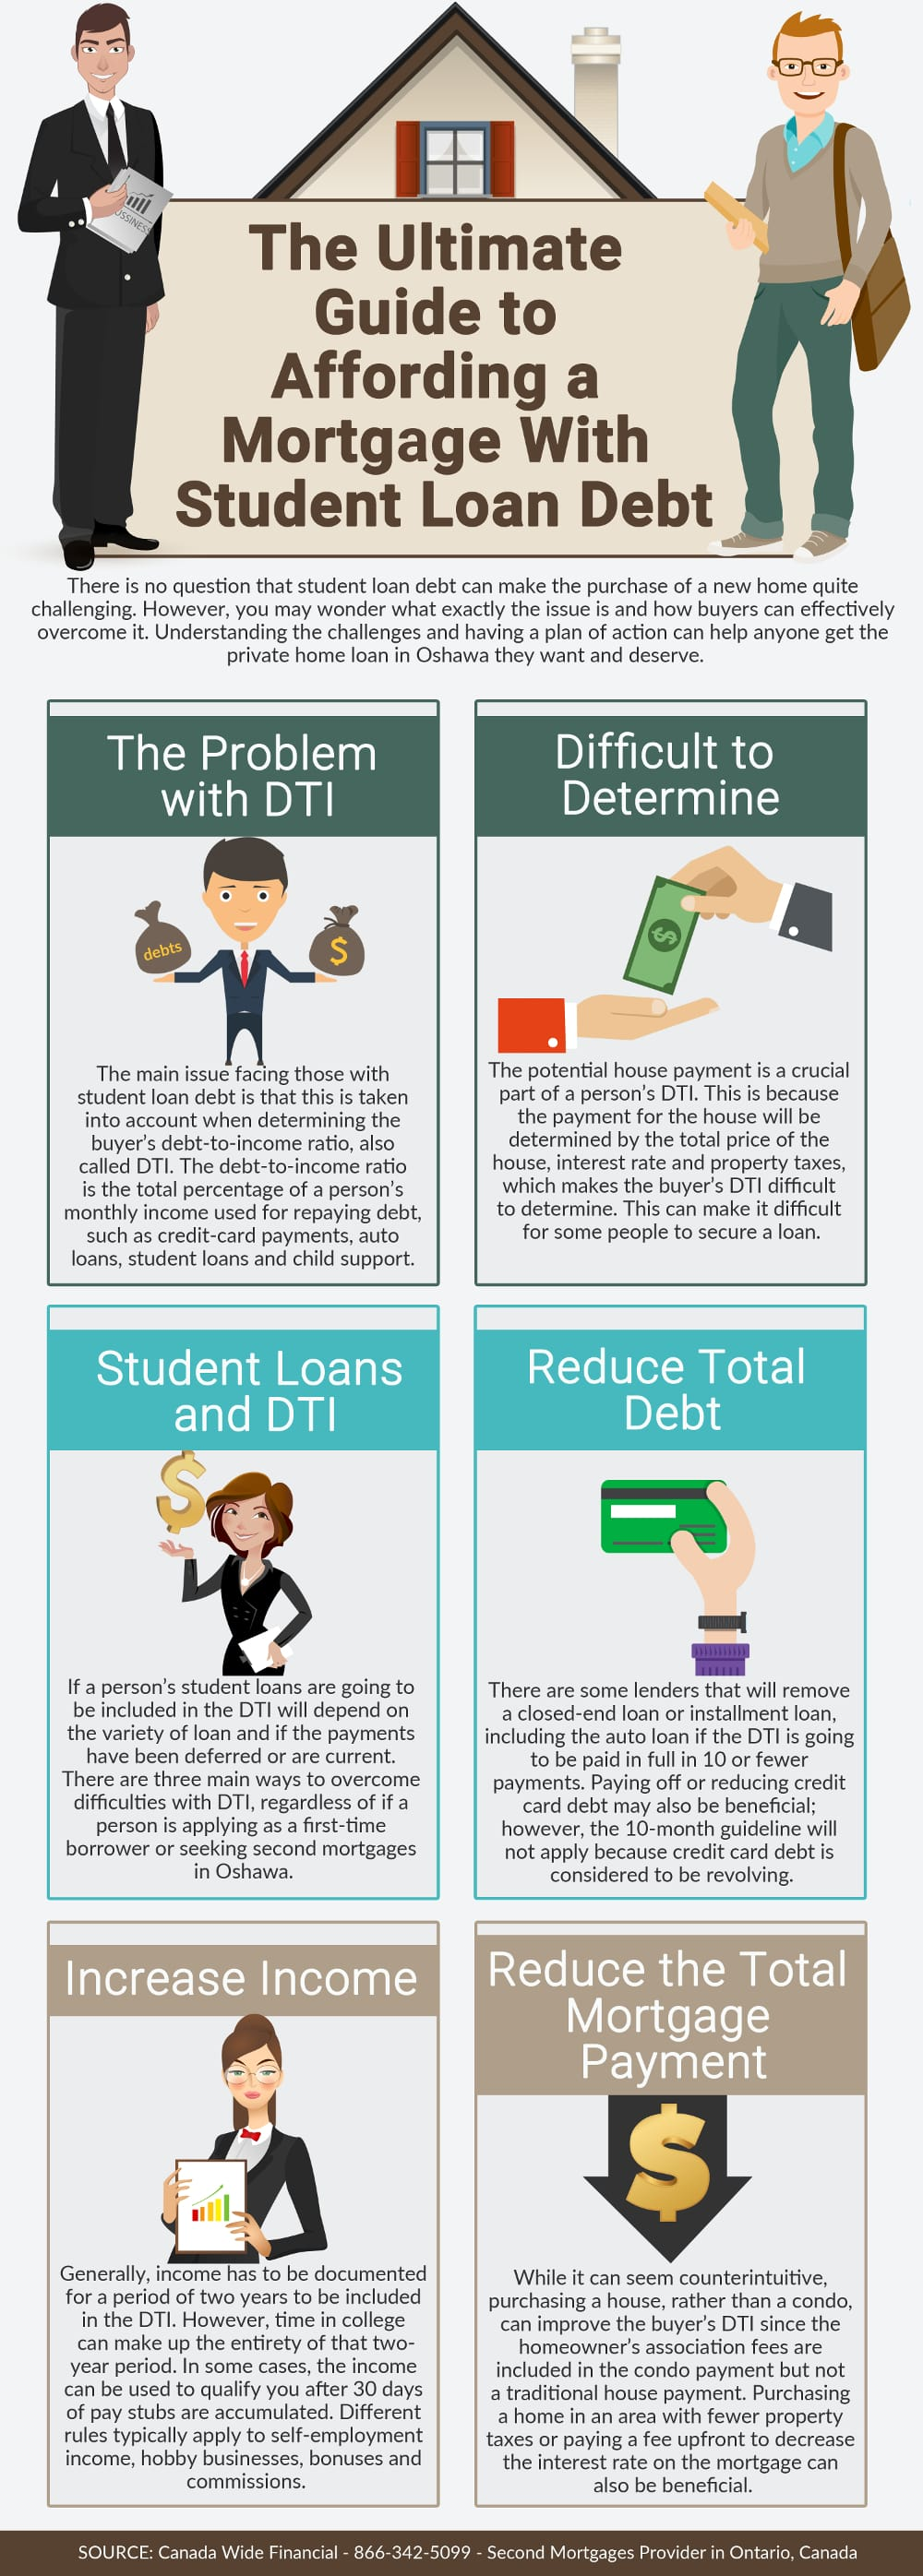 Guide to Affording a Mortgage With Student Loan Debt - Infographic